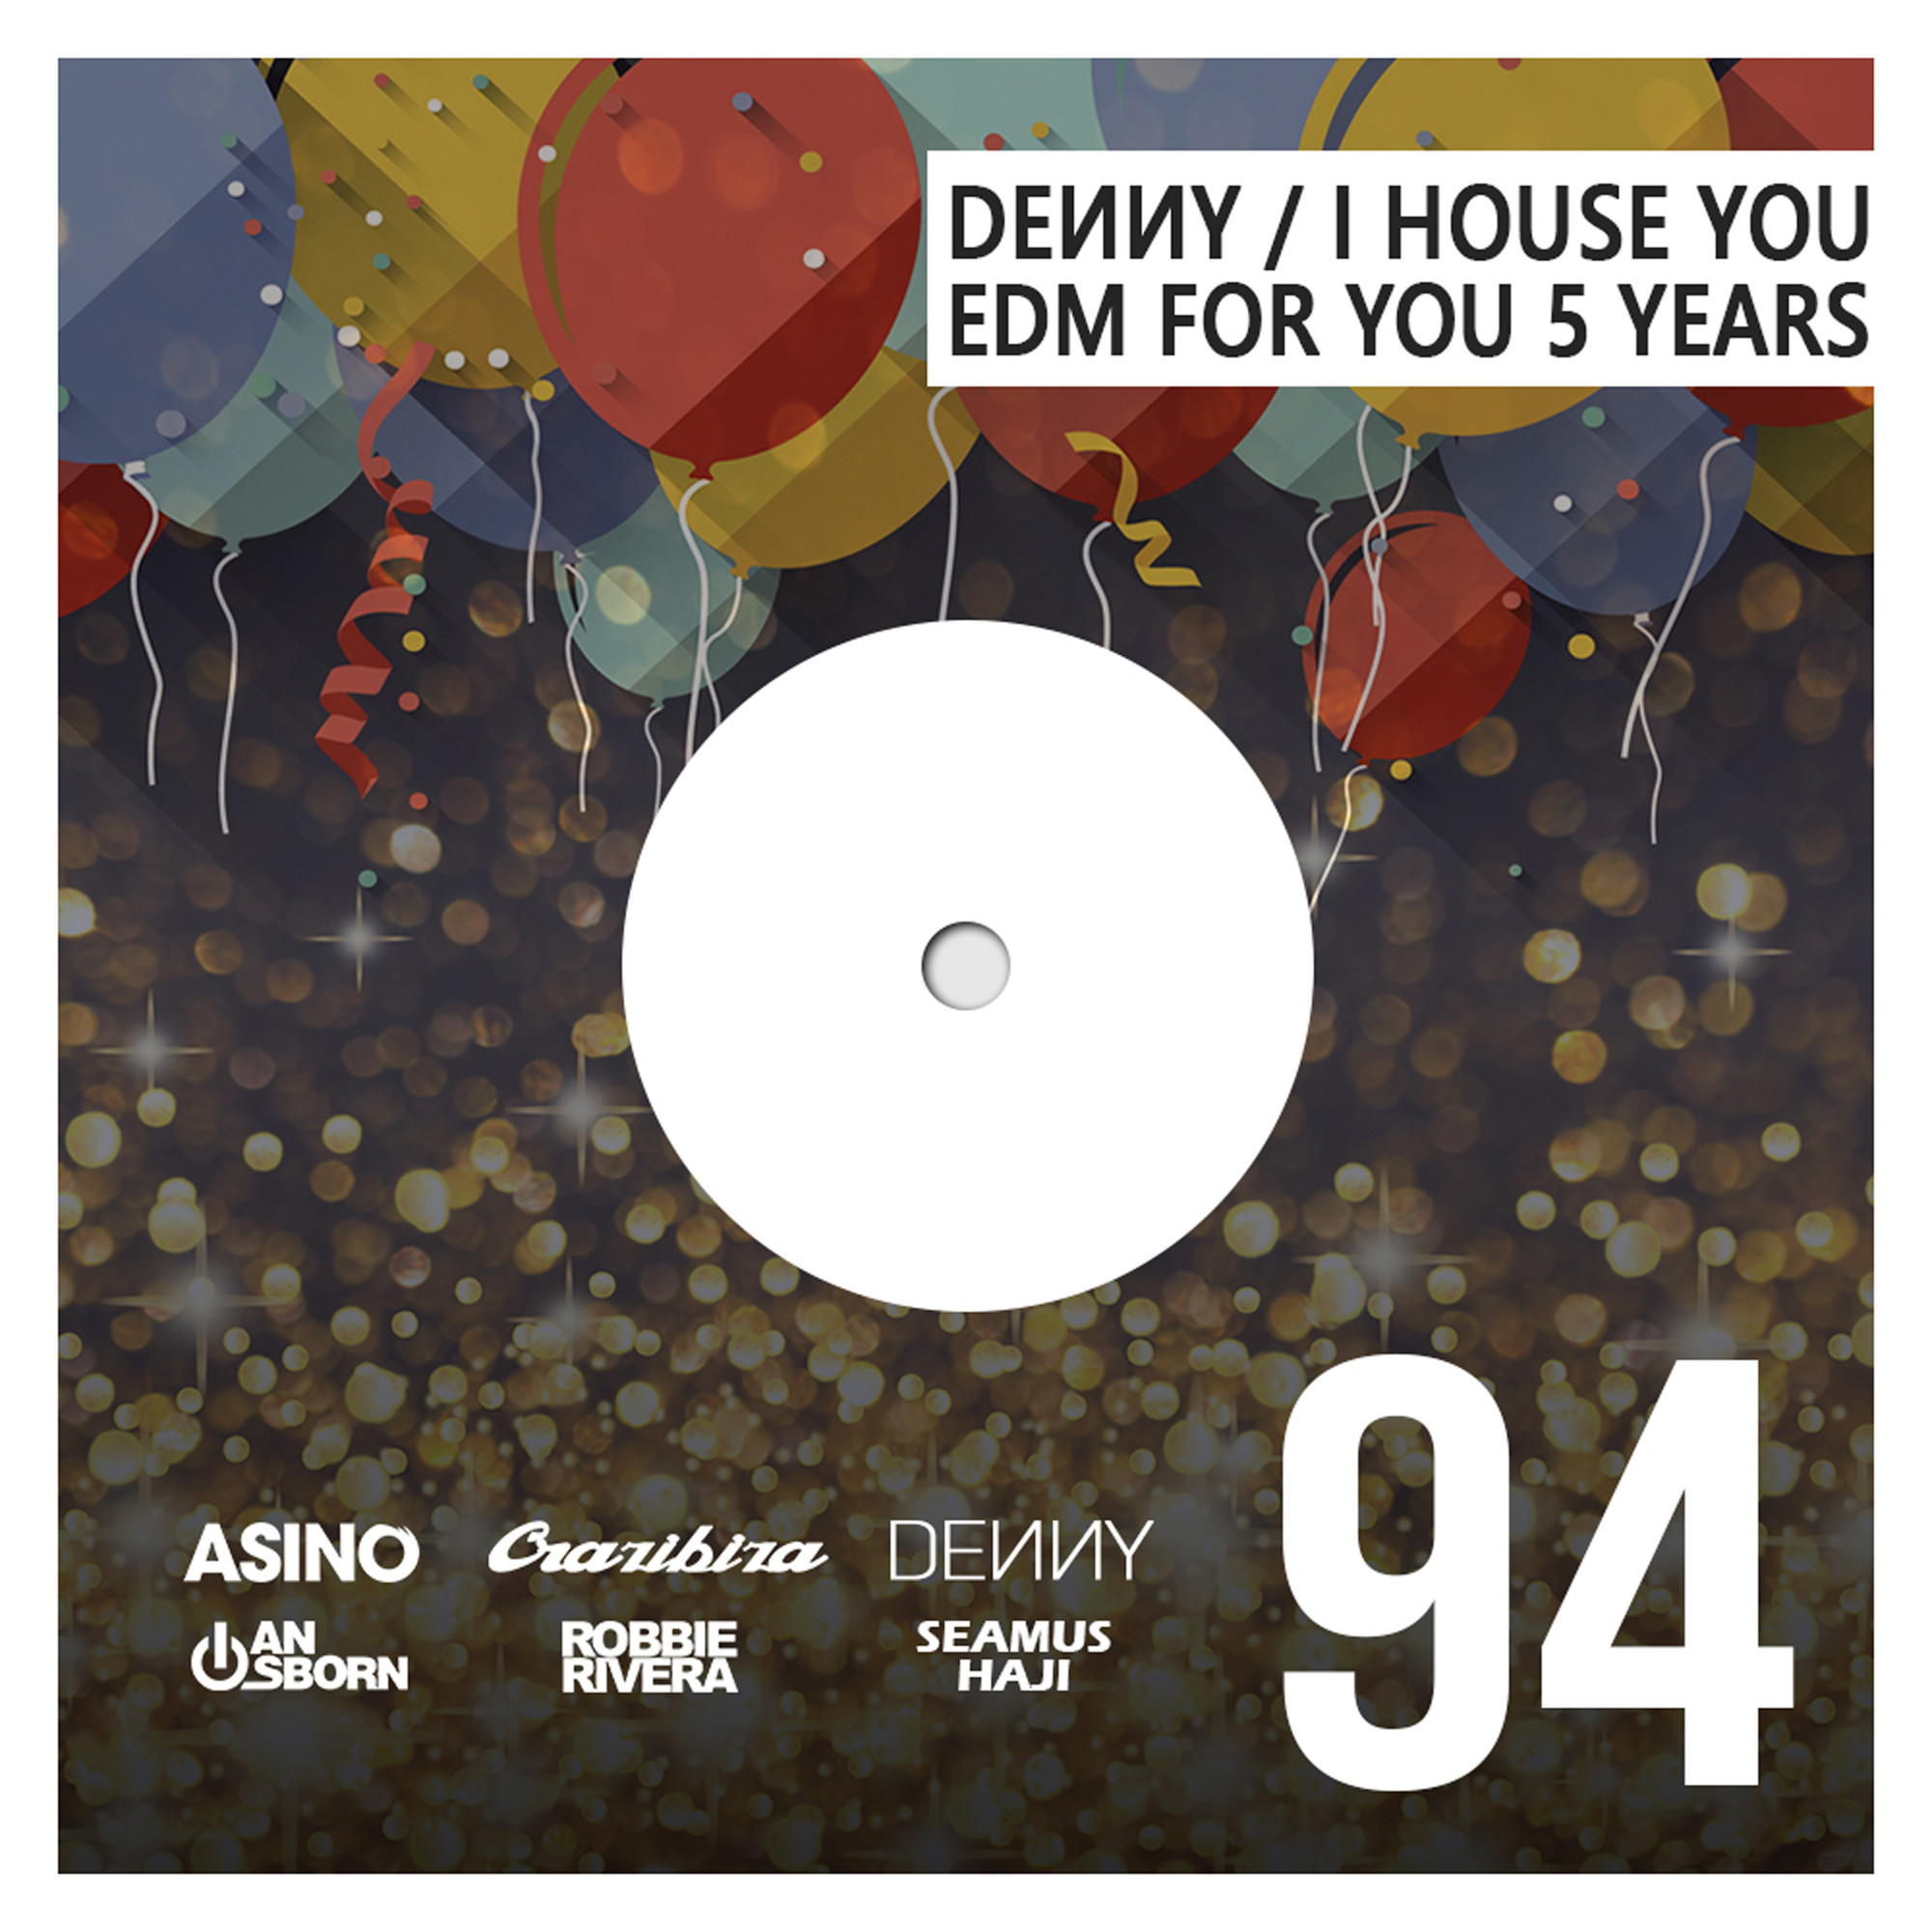 Denny - I House You 94 - 5 Years of EDM FOR YOU #94